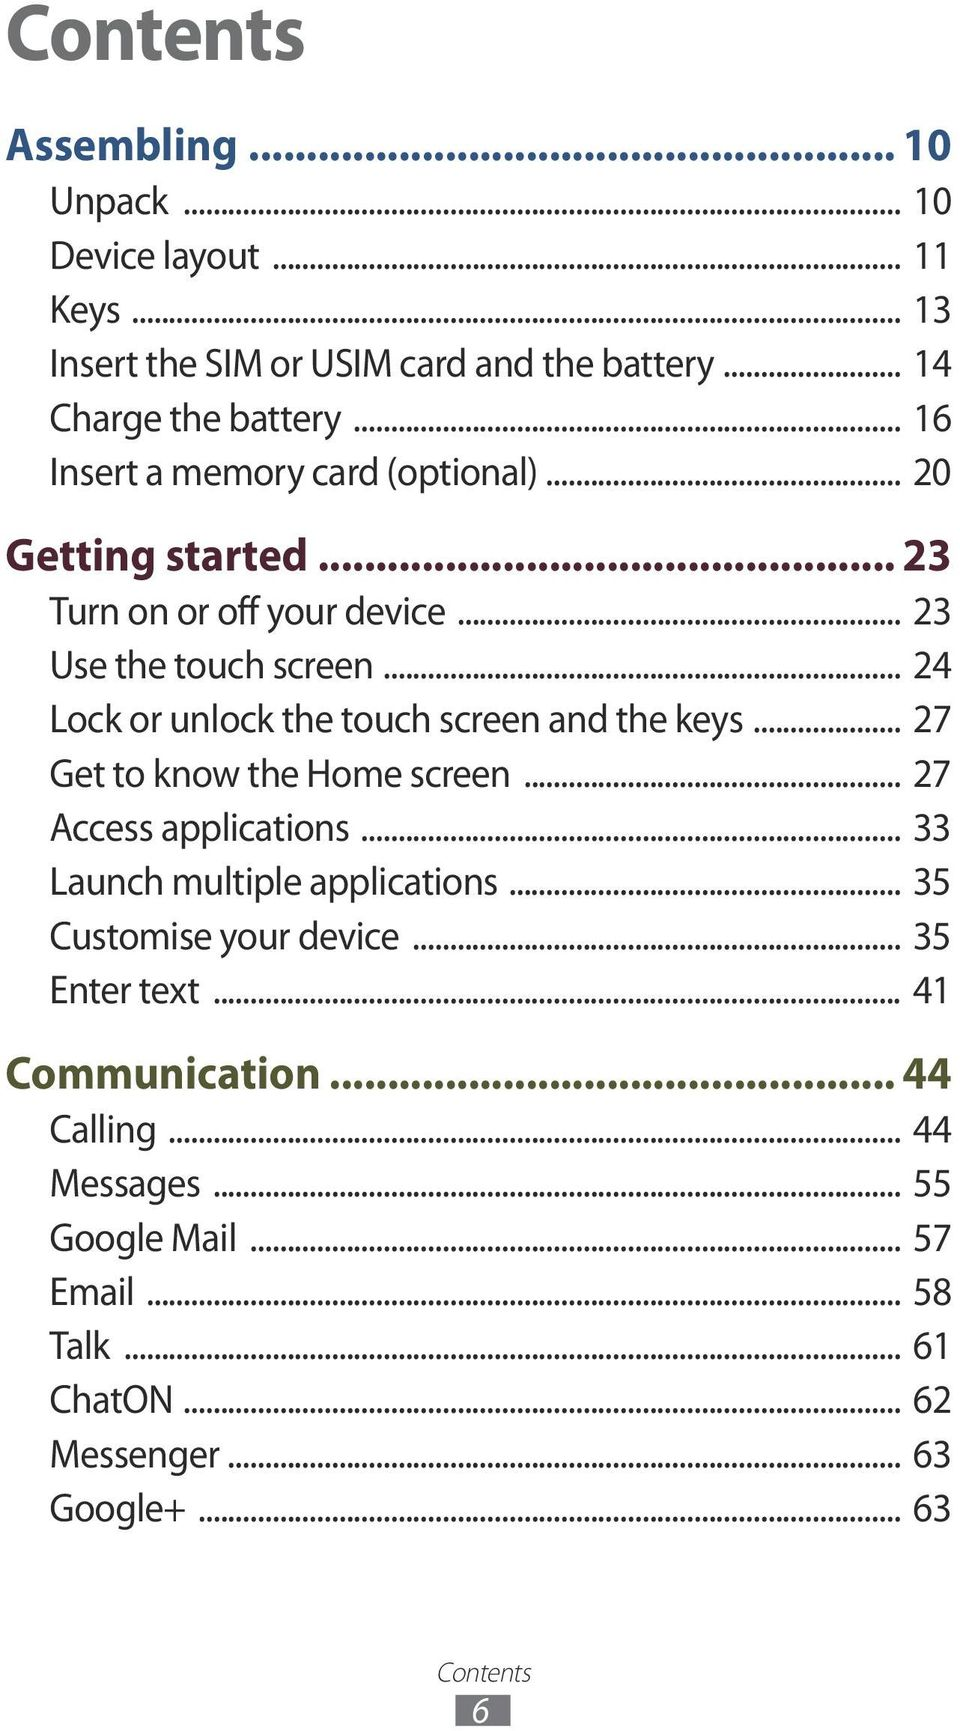 .. 24 Lock or unlock the touch screen and the keys... 27 Get to know the Home screen... 27 Access applications... 33 Launch multiple applications.